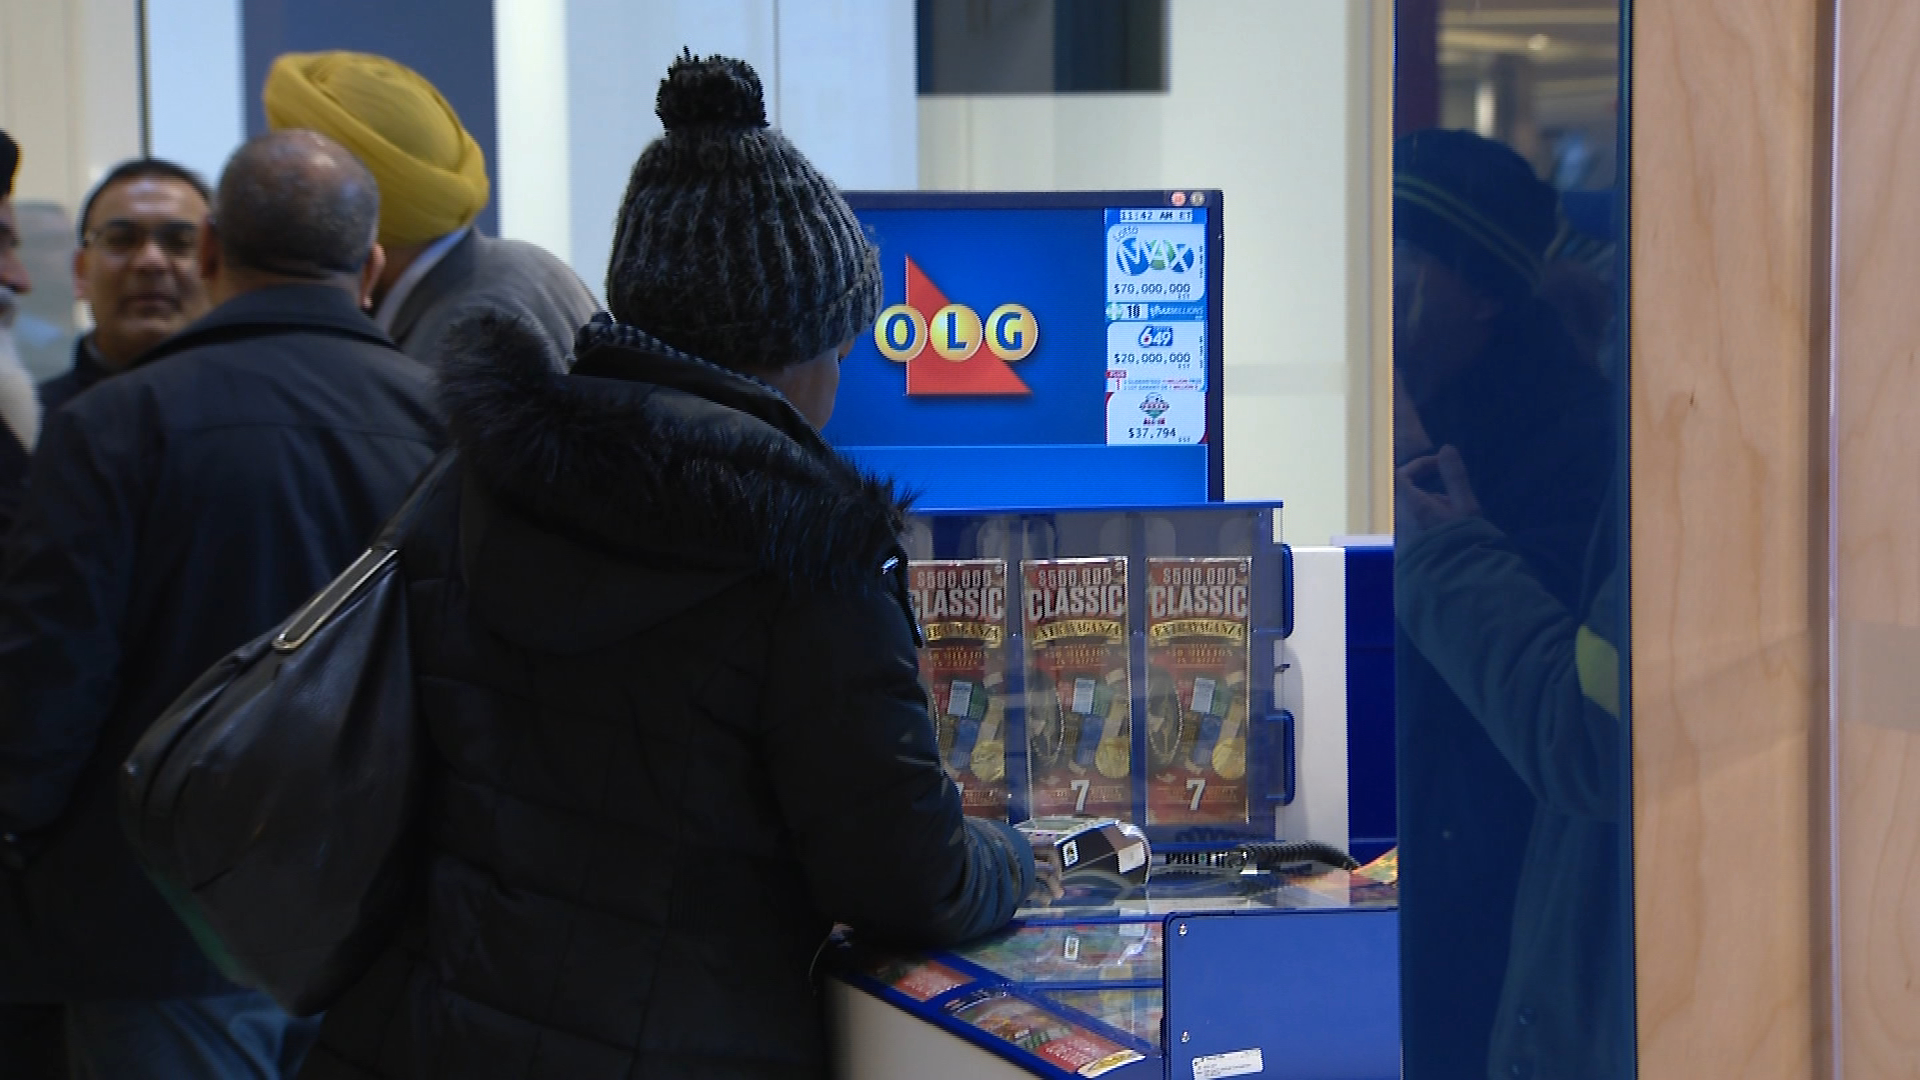 HISTORIC PRIZE: $70 million lottery ticket sold in Brampton